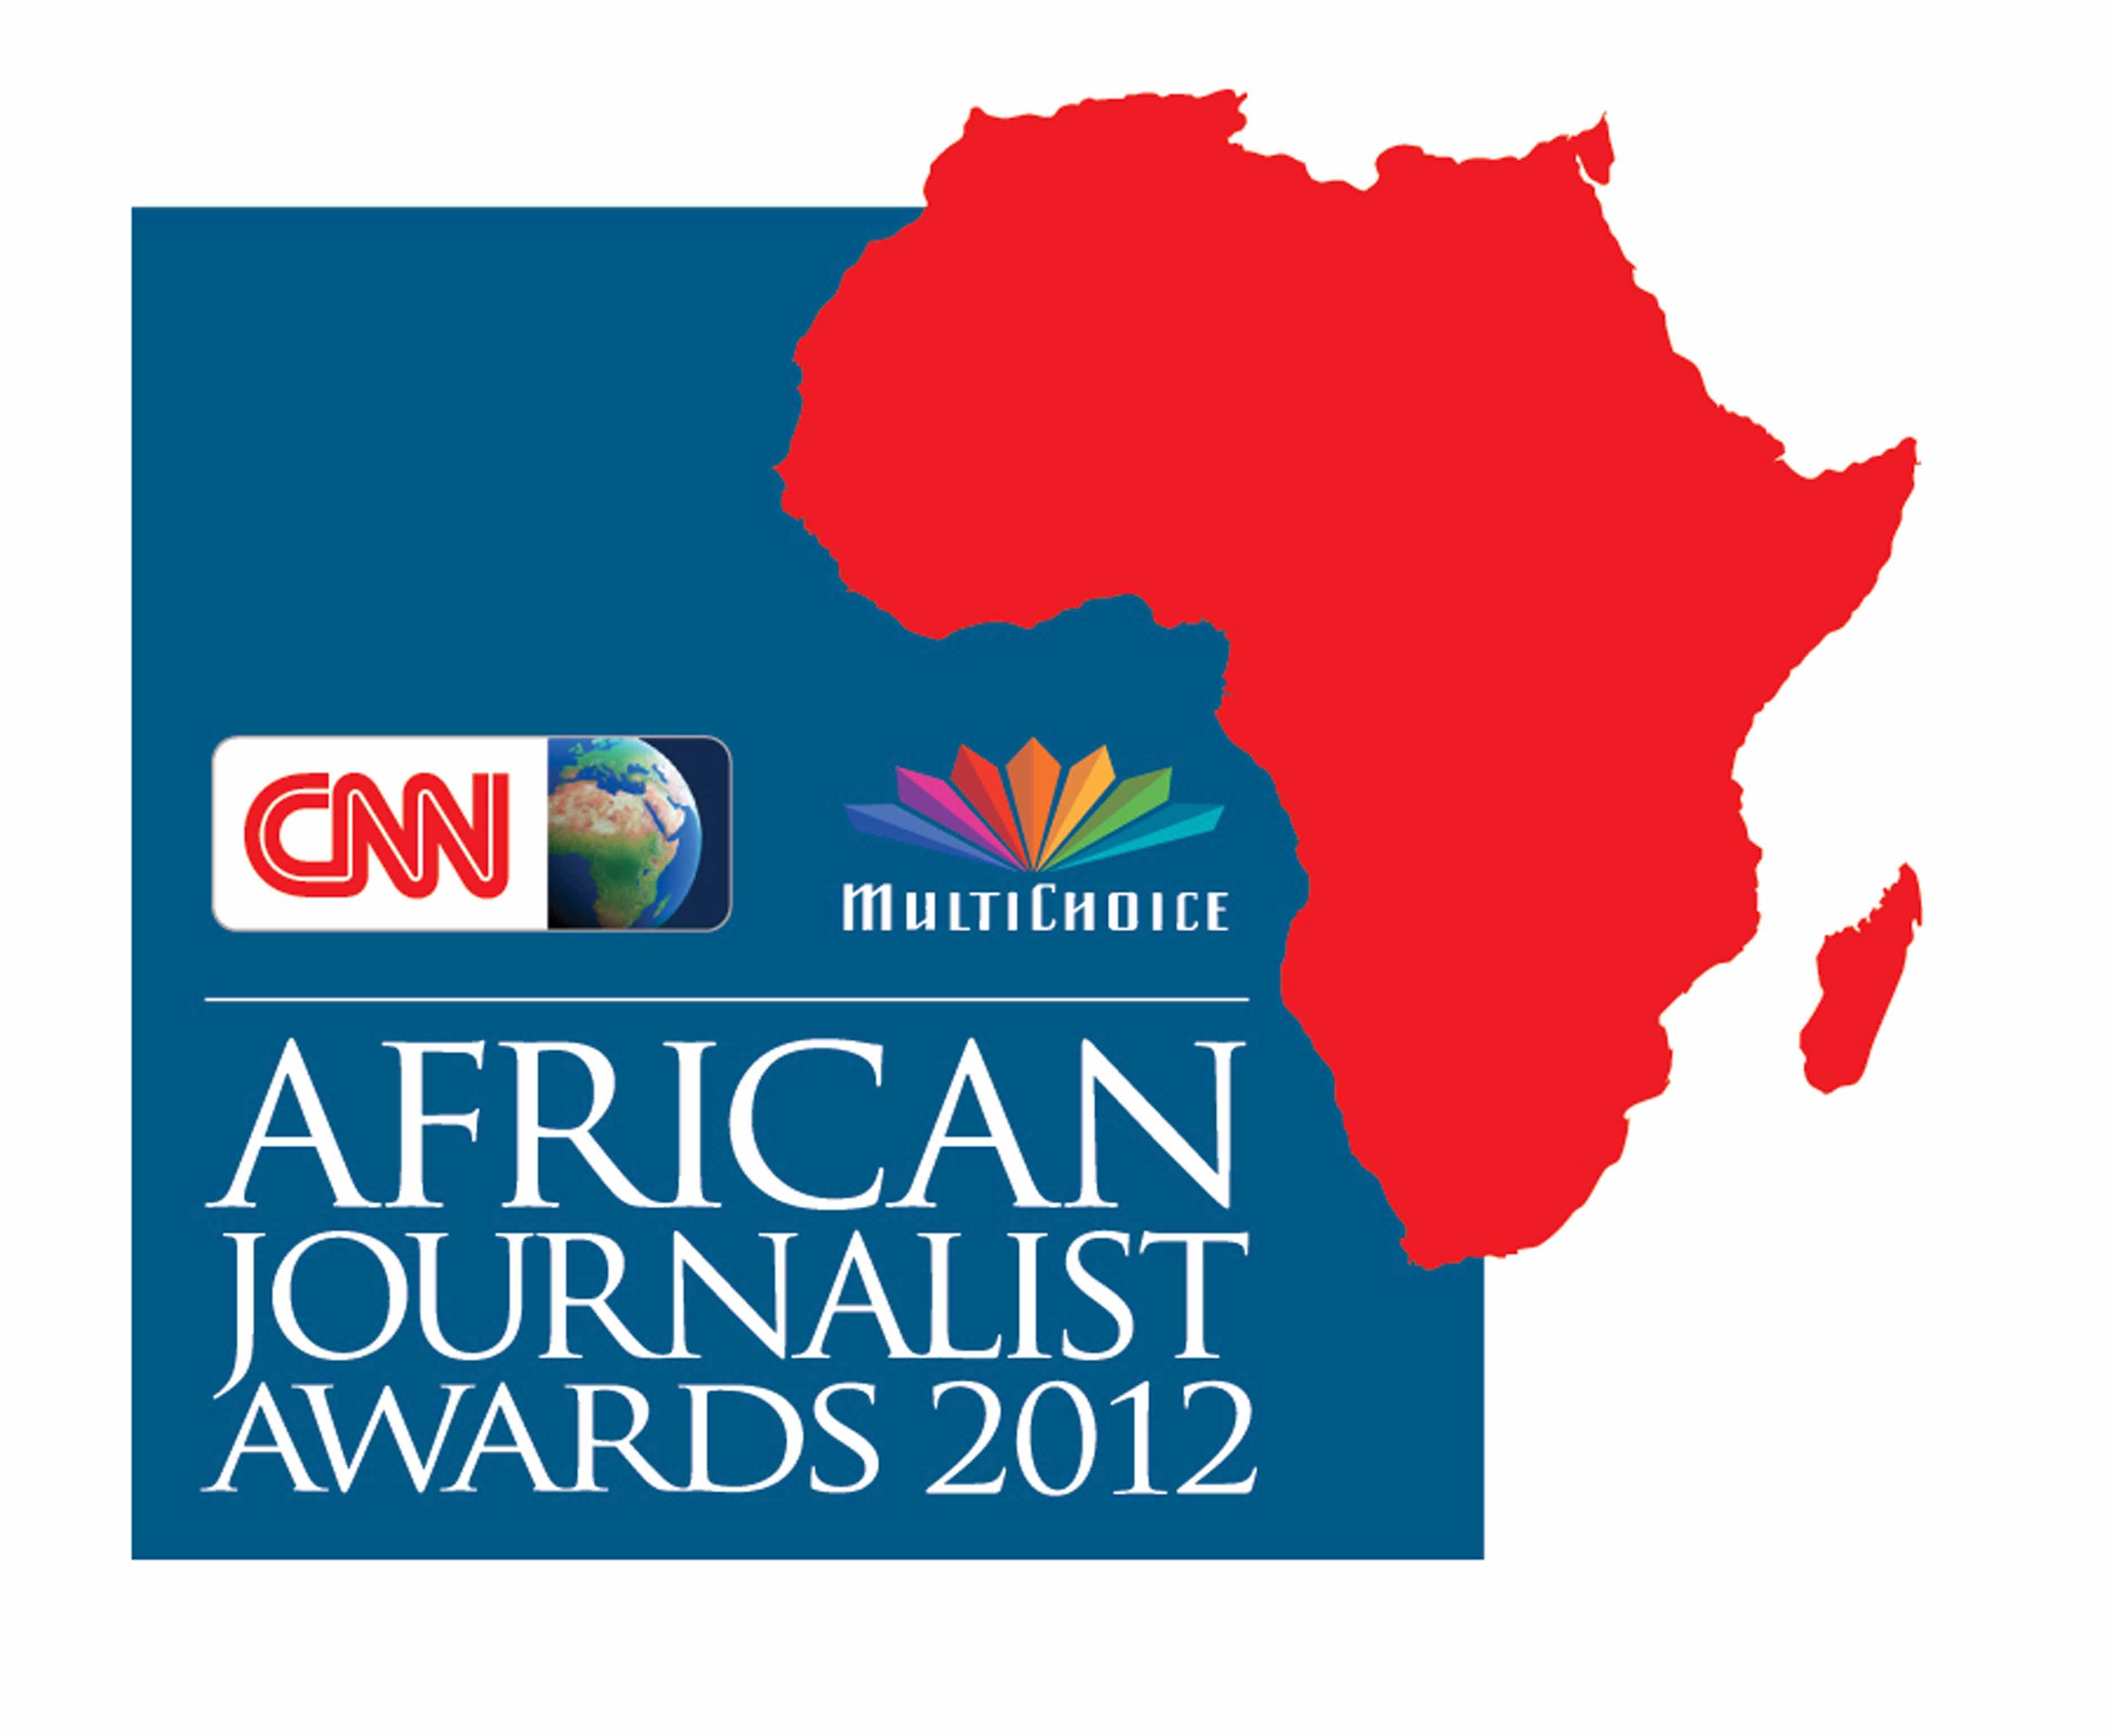 i am nominated for the cnn multichoice african journalist awards 2012